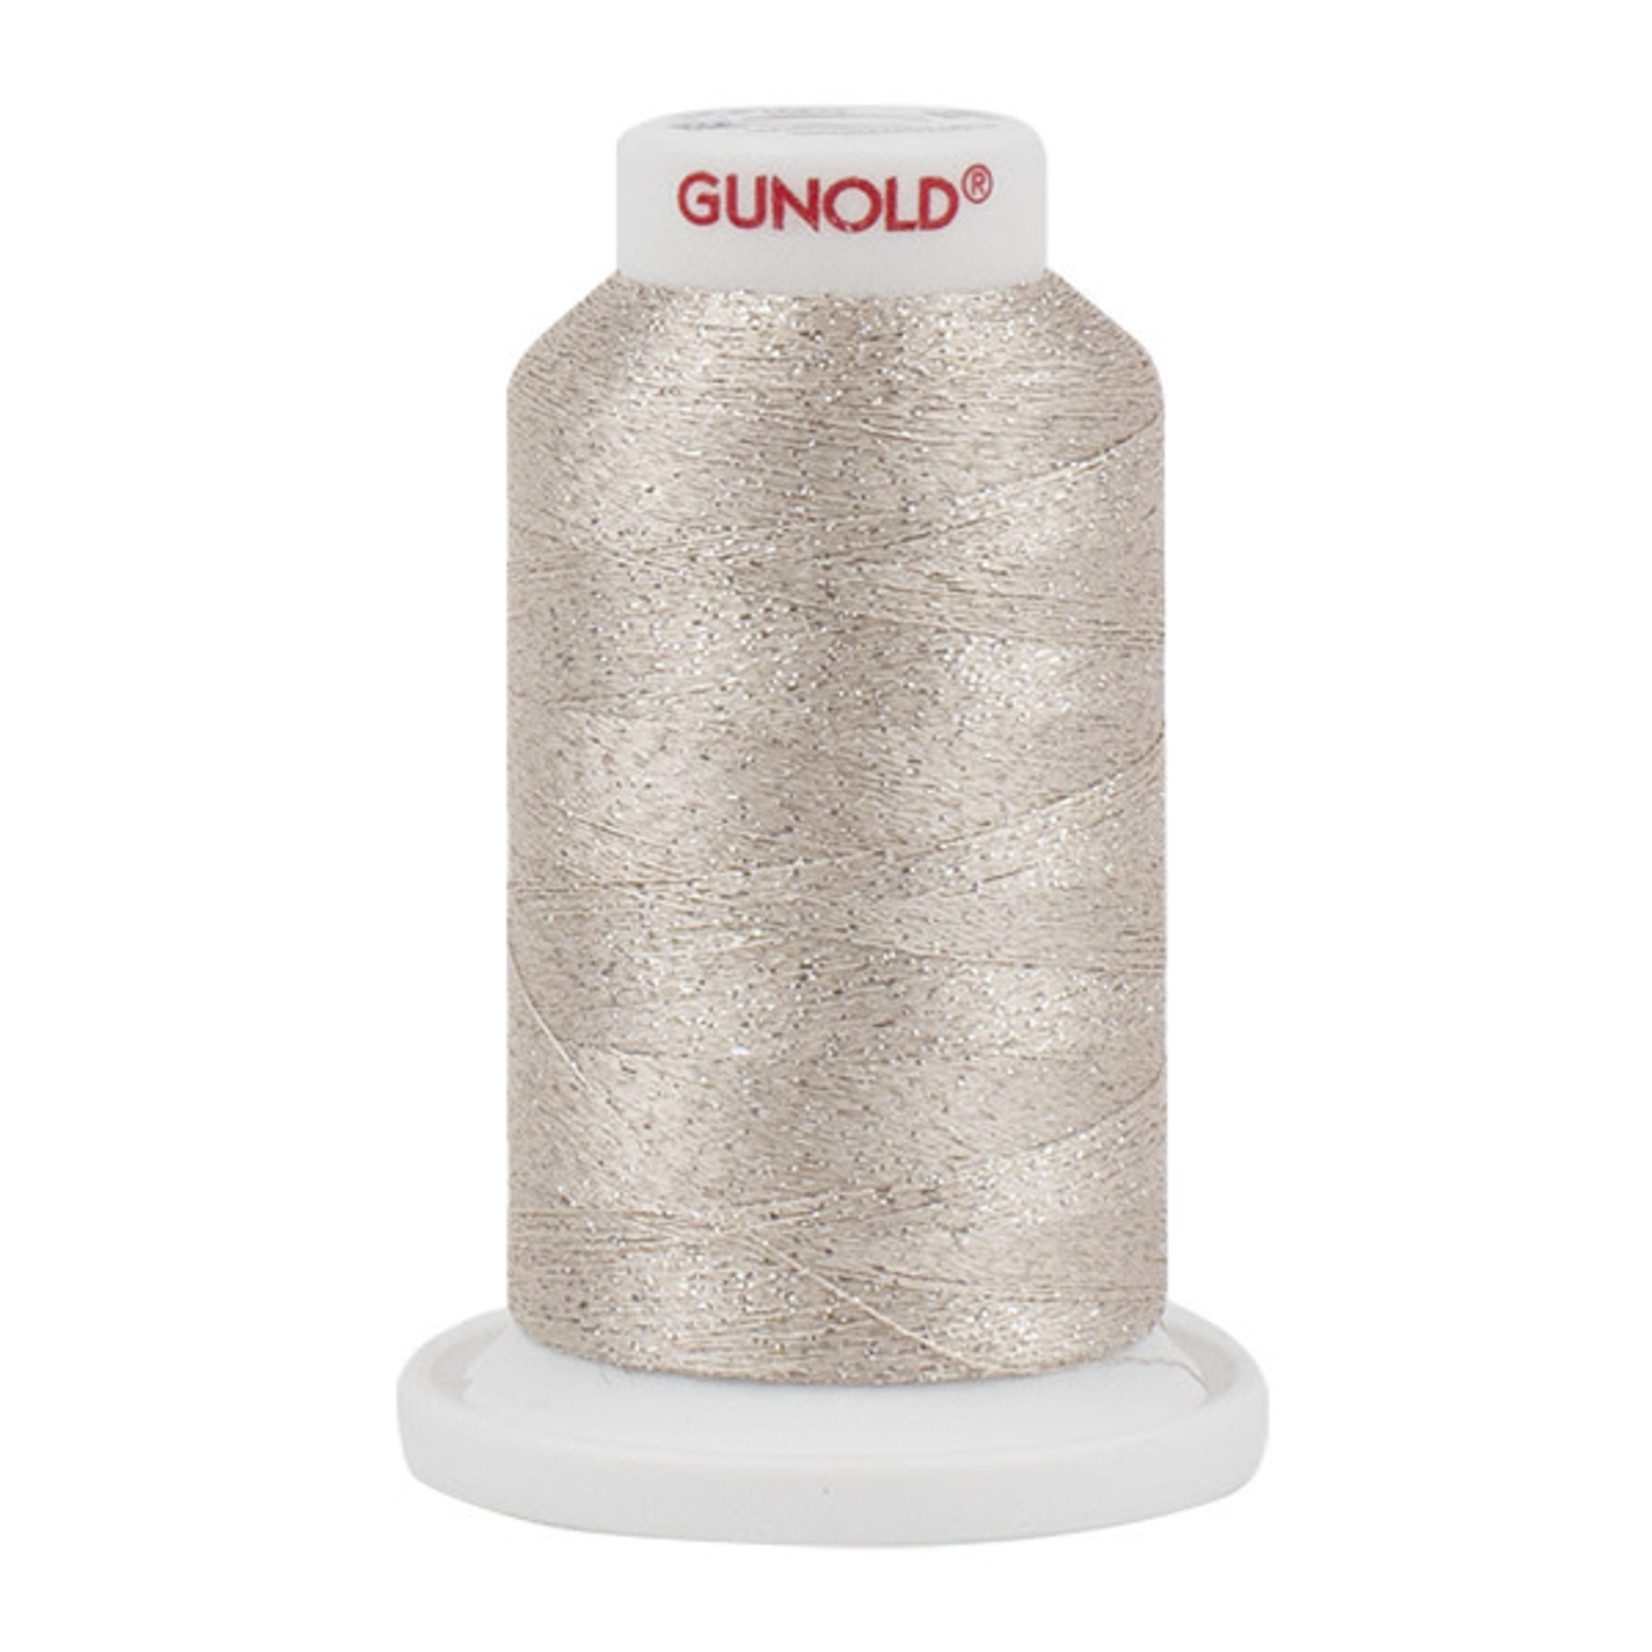 Gunold Poly Sparkle™ (Star™) Mini-King Cone 1,100 YD, 30 Wt, Light Ecru with Silver Sparkle 50522